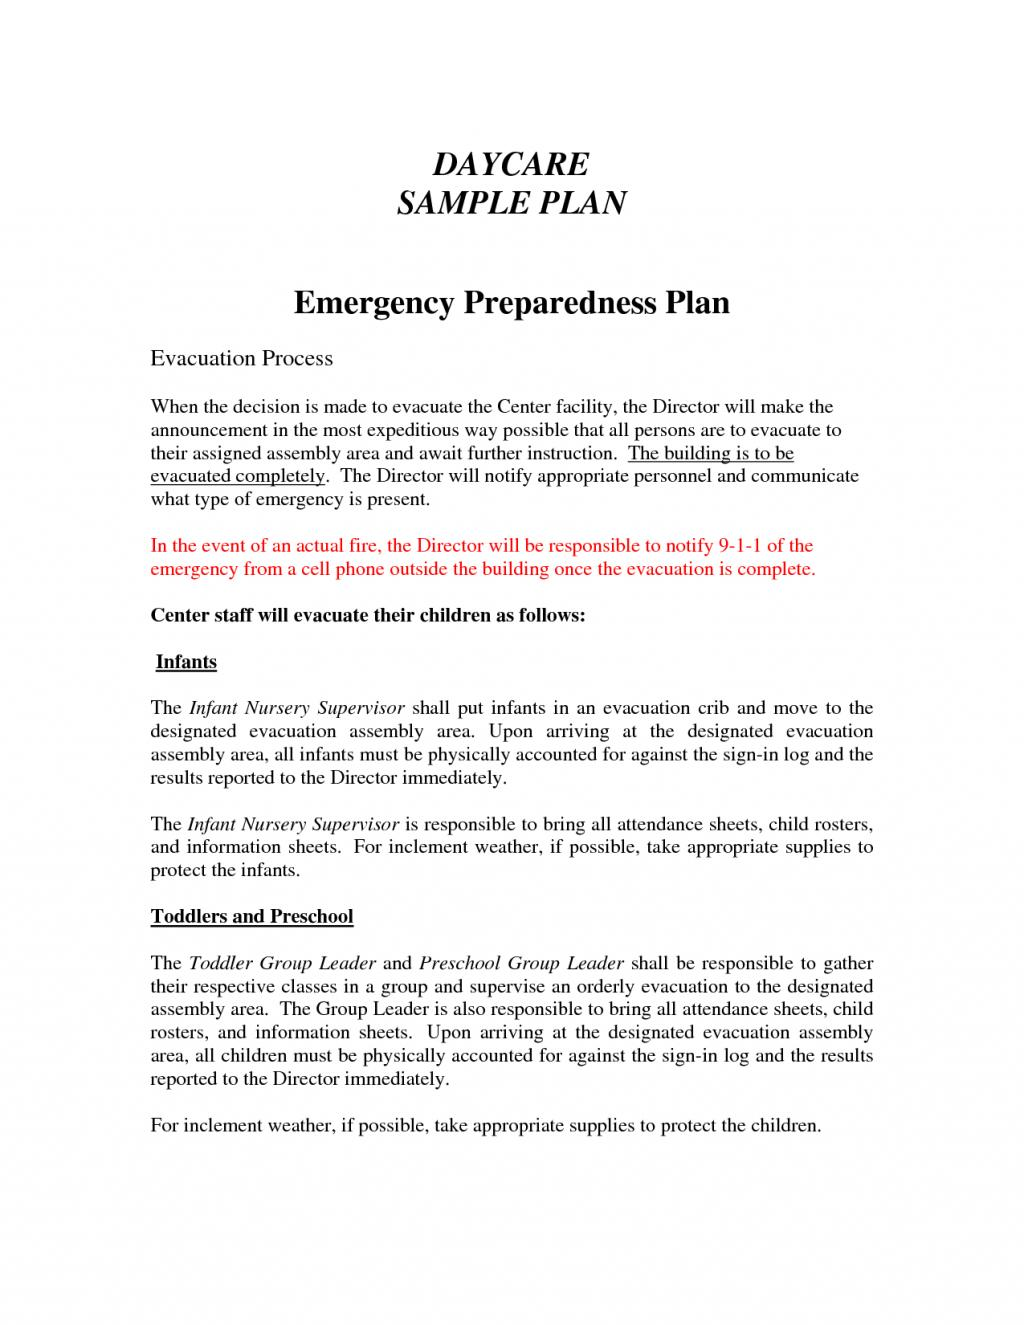 Emergency Evacuation Roster Template